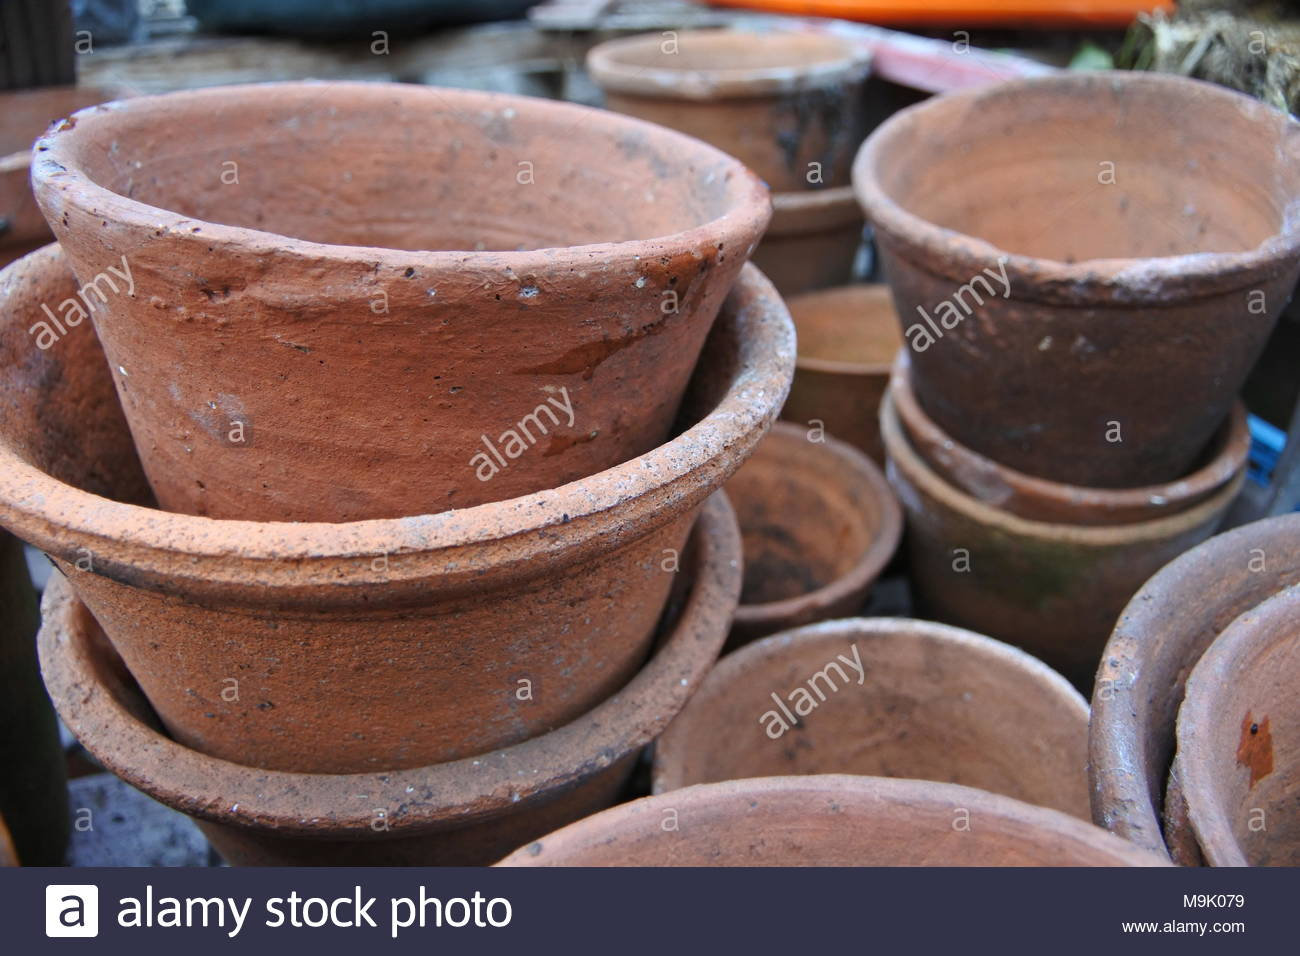 victorian terracotta flower pots stacked M9K079